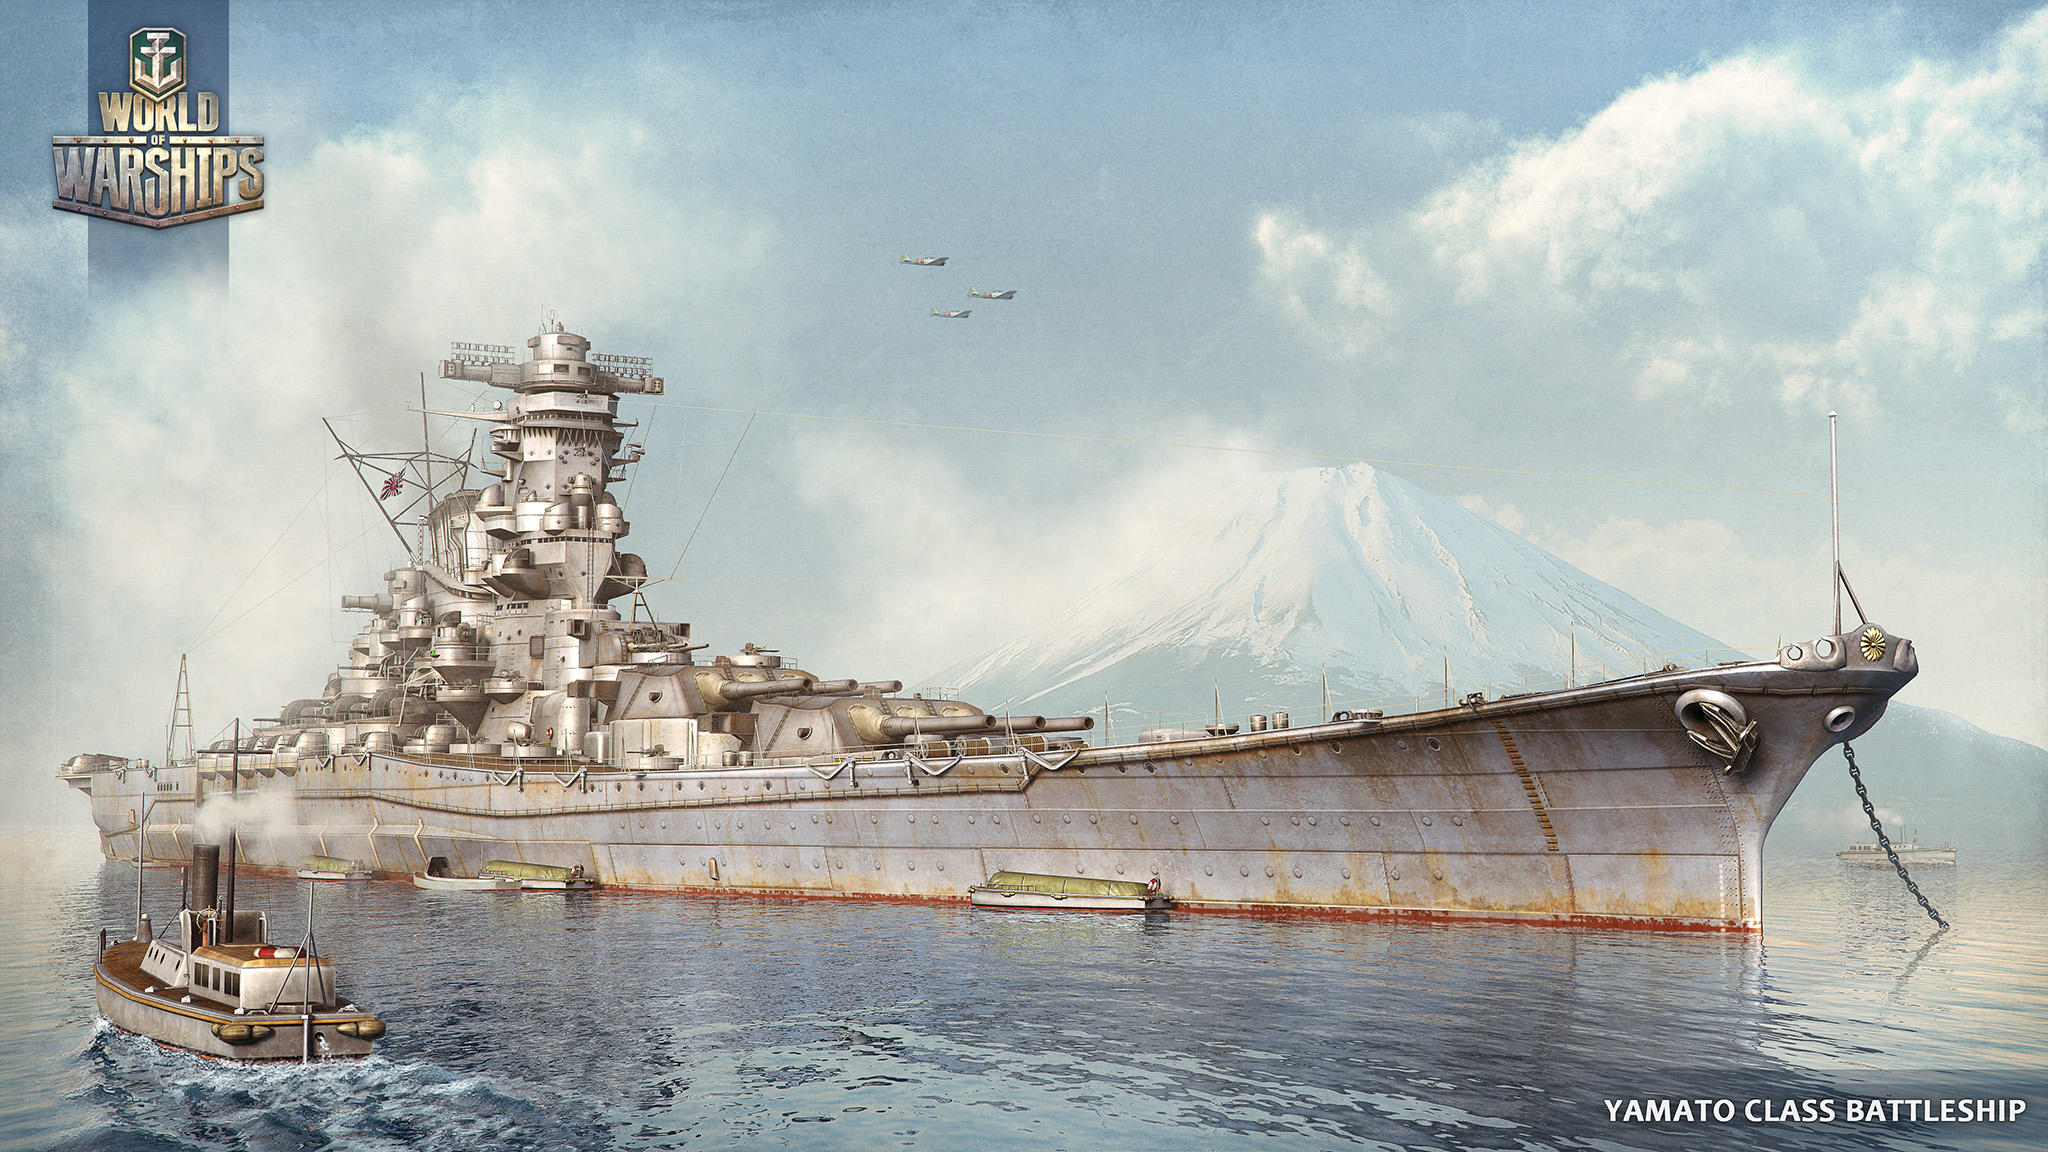 Yamato Battleship World of Warships illustration by KrIM-art